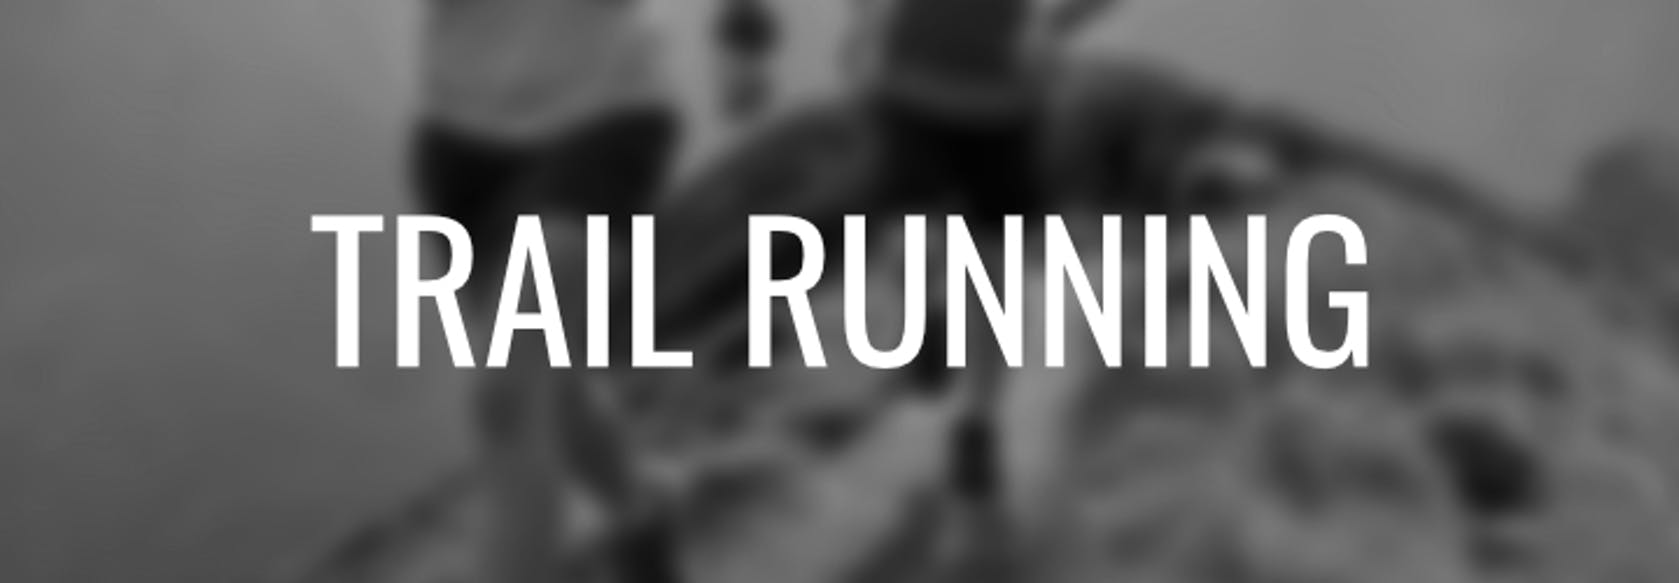 Trail running shop online